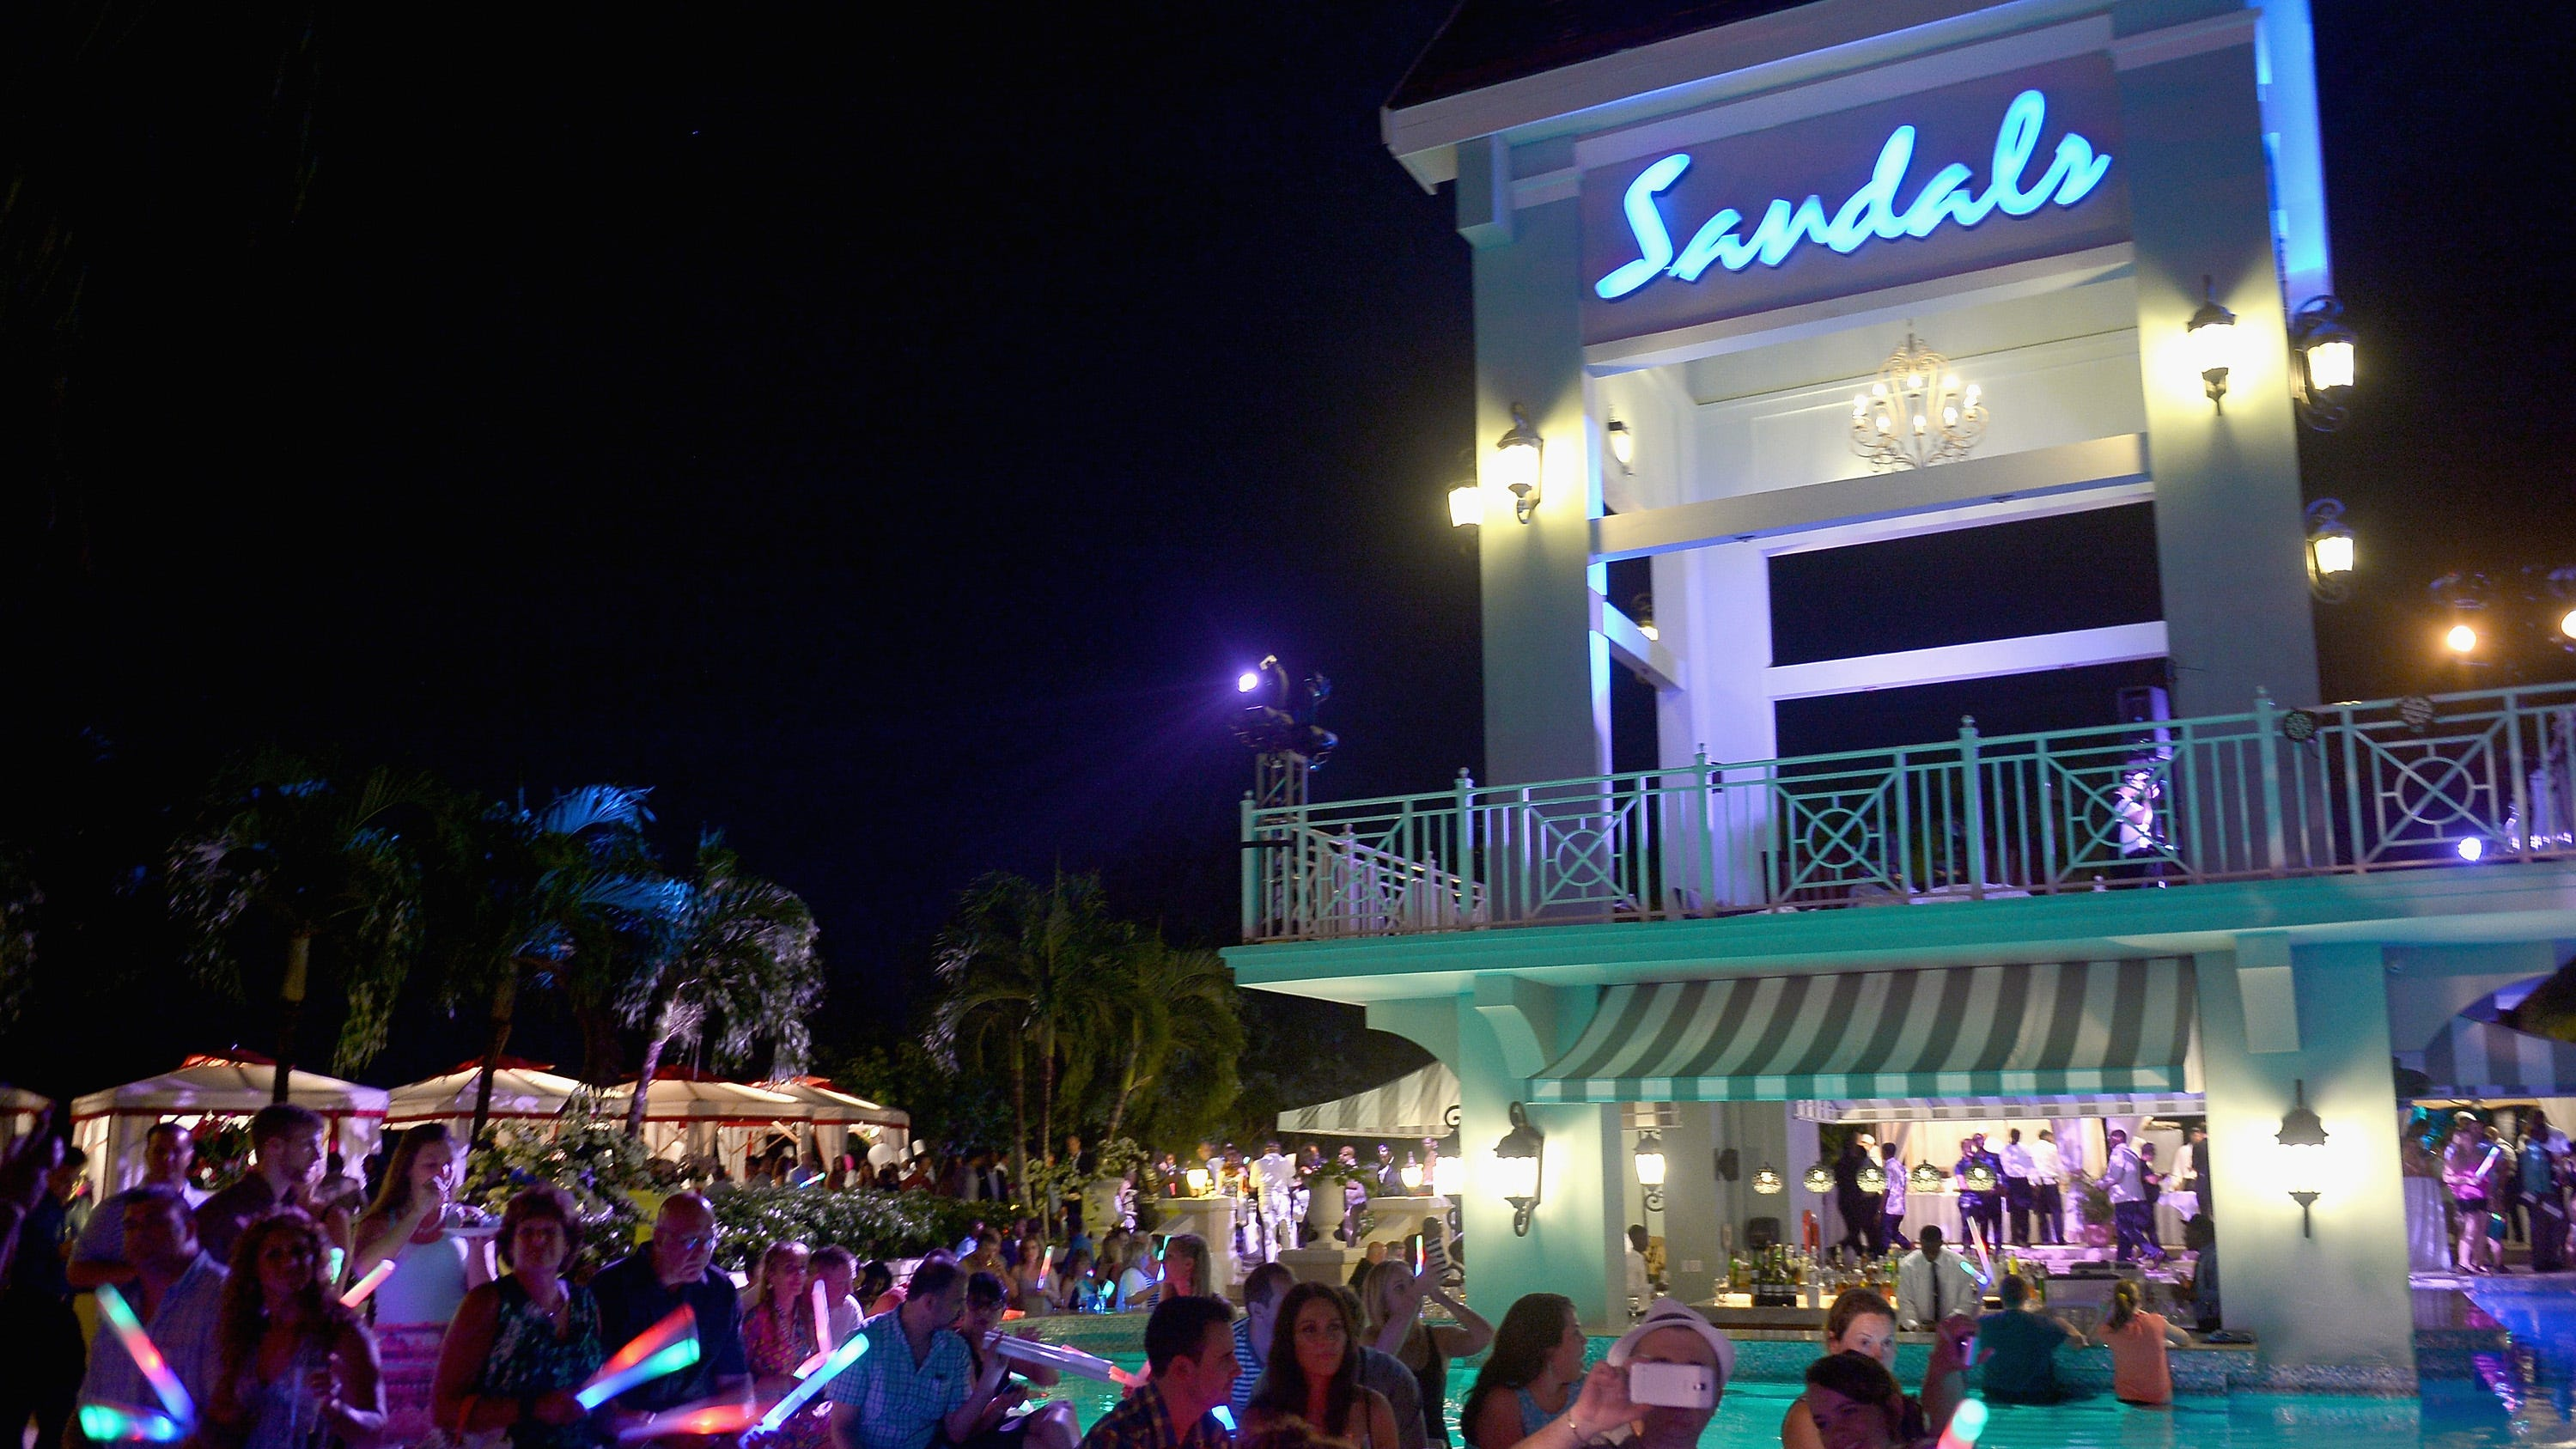 Guests of Sandals Ochi Beach Resort danced the night away to the beats of Music sensation, DJ Tracy Young during day 3 of the grand opening of Sandals Ochi Beach Resort on June 1, 2015 in Ocho Rios, Jamaica.